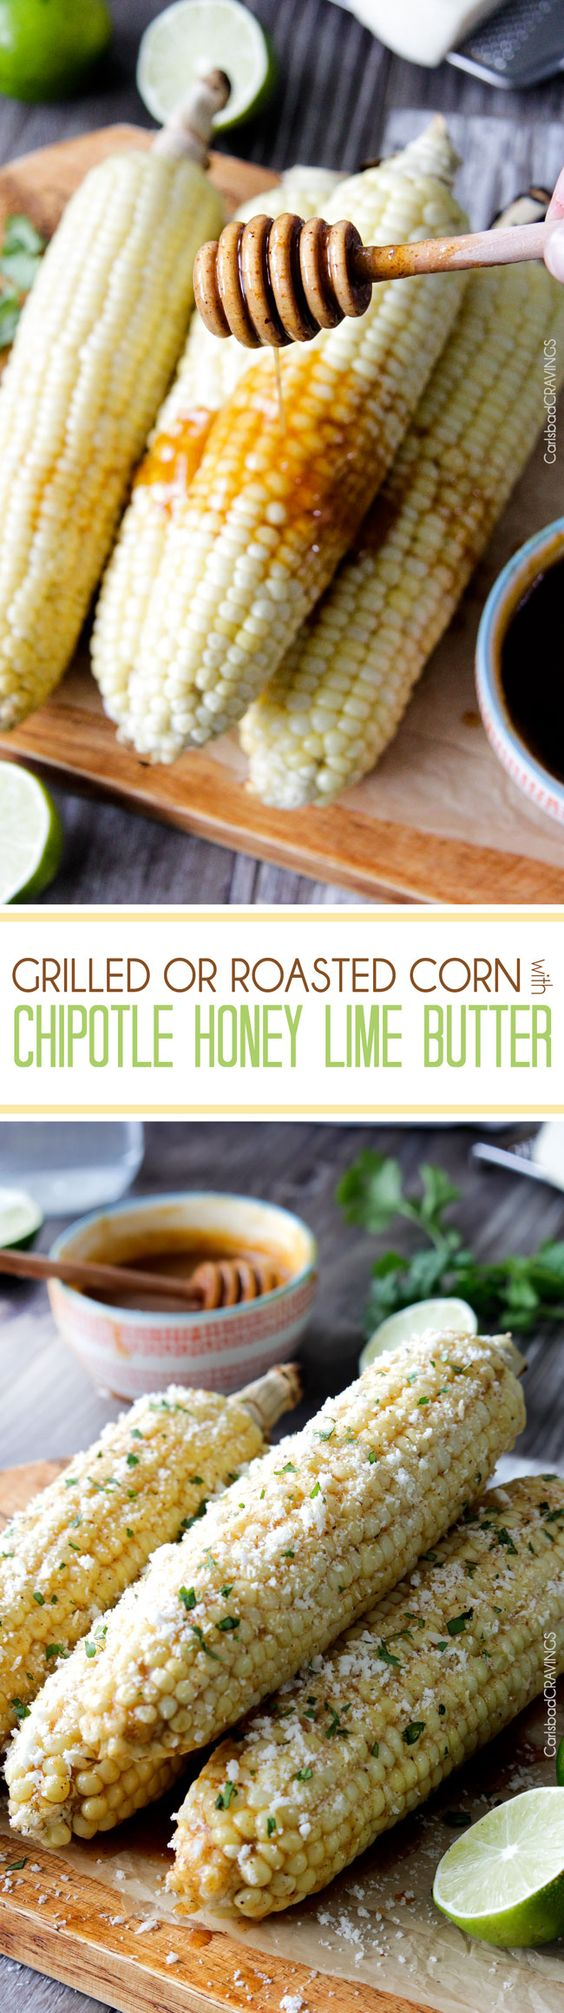 Roasted or grilled corn on the cob never tasted so delicious brushed ...